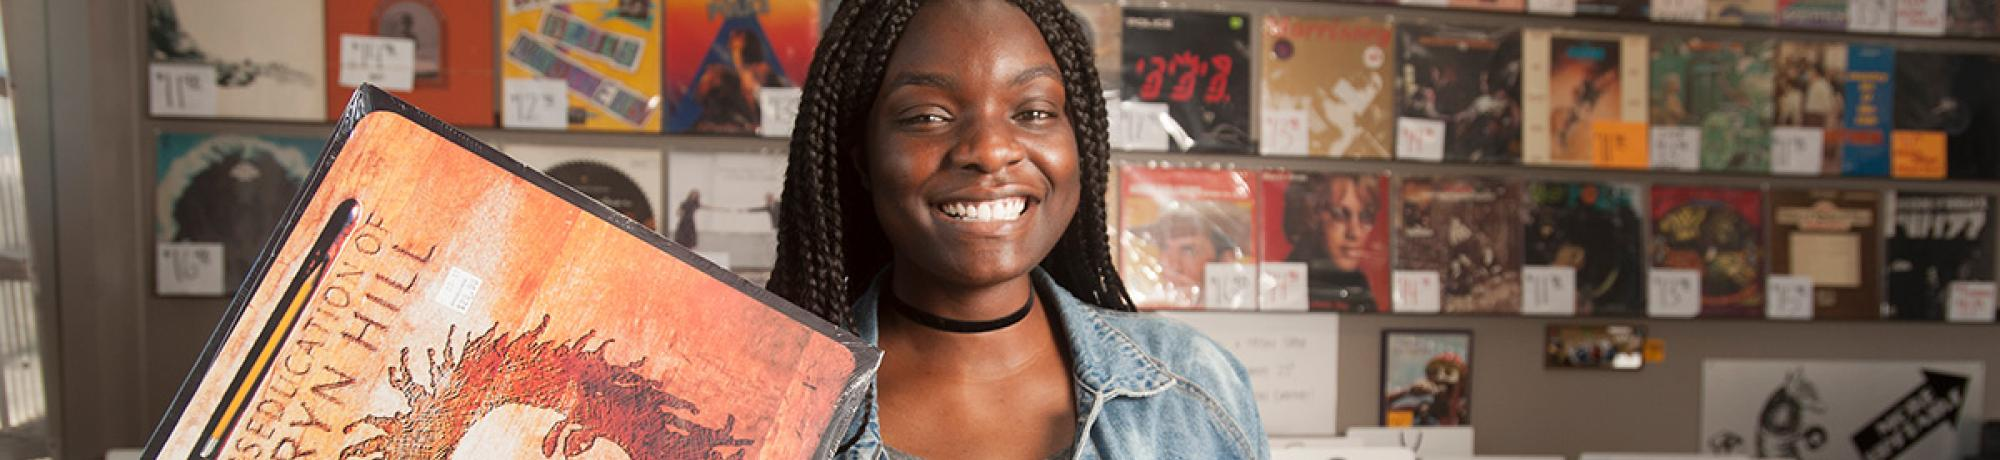 Taking a gap year after graduation can help decide your future. McNair scholar and Fulbright award winner Amanda Eke '17, with bachelor's degree in gender, sexuality and women's studies, is spending this year using hip hop lyrics to teach English in Malta. (Gregory Urquiaga/UC Davis)